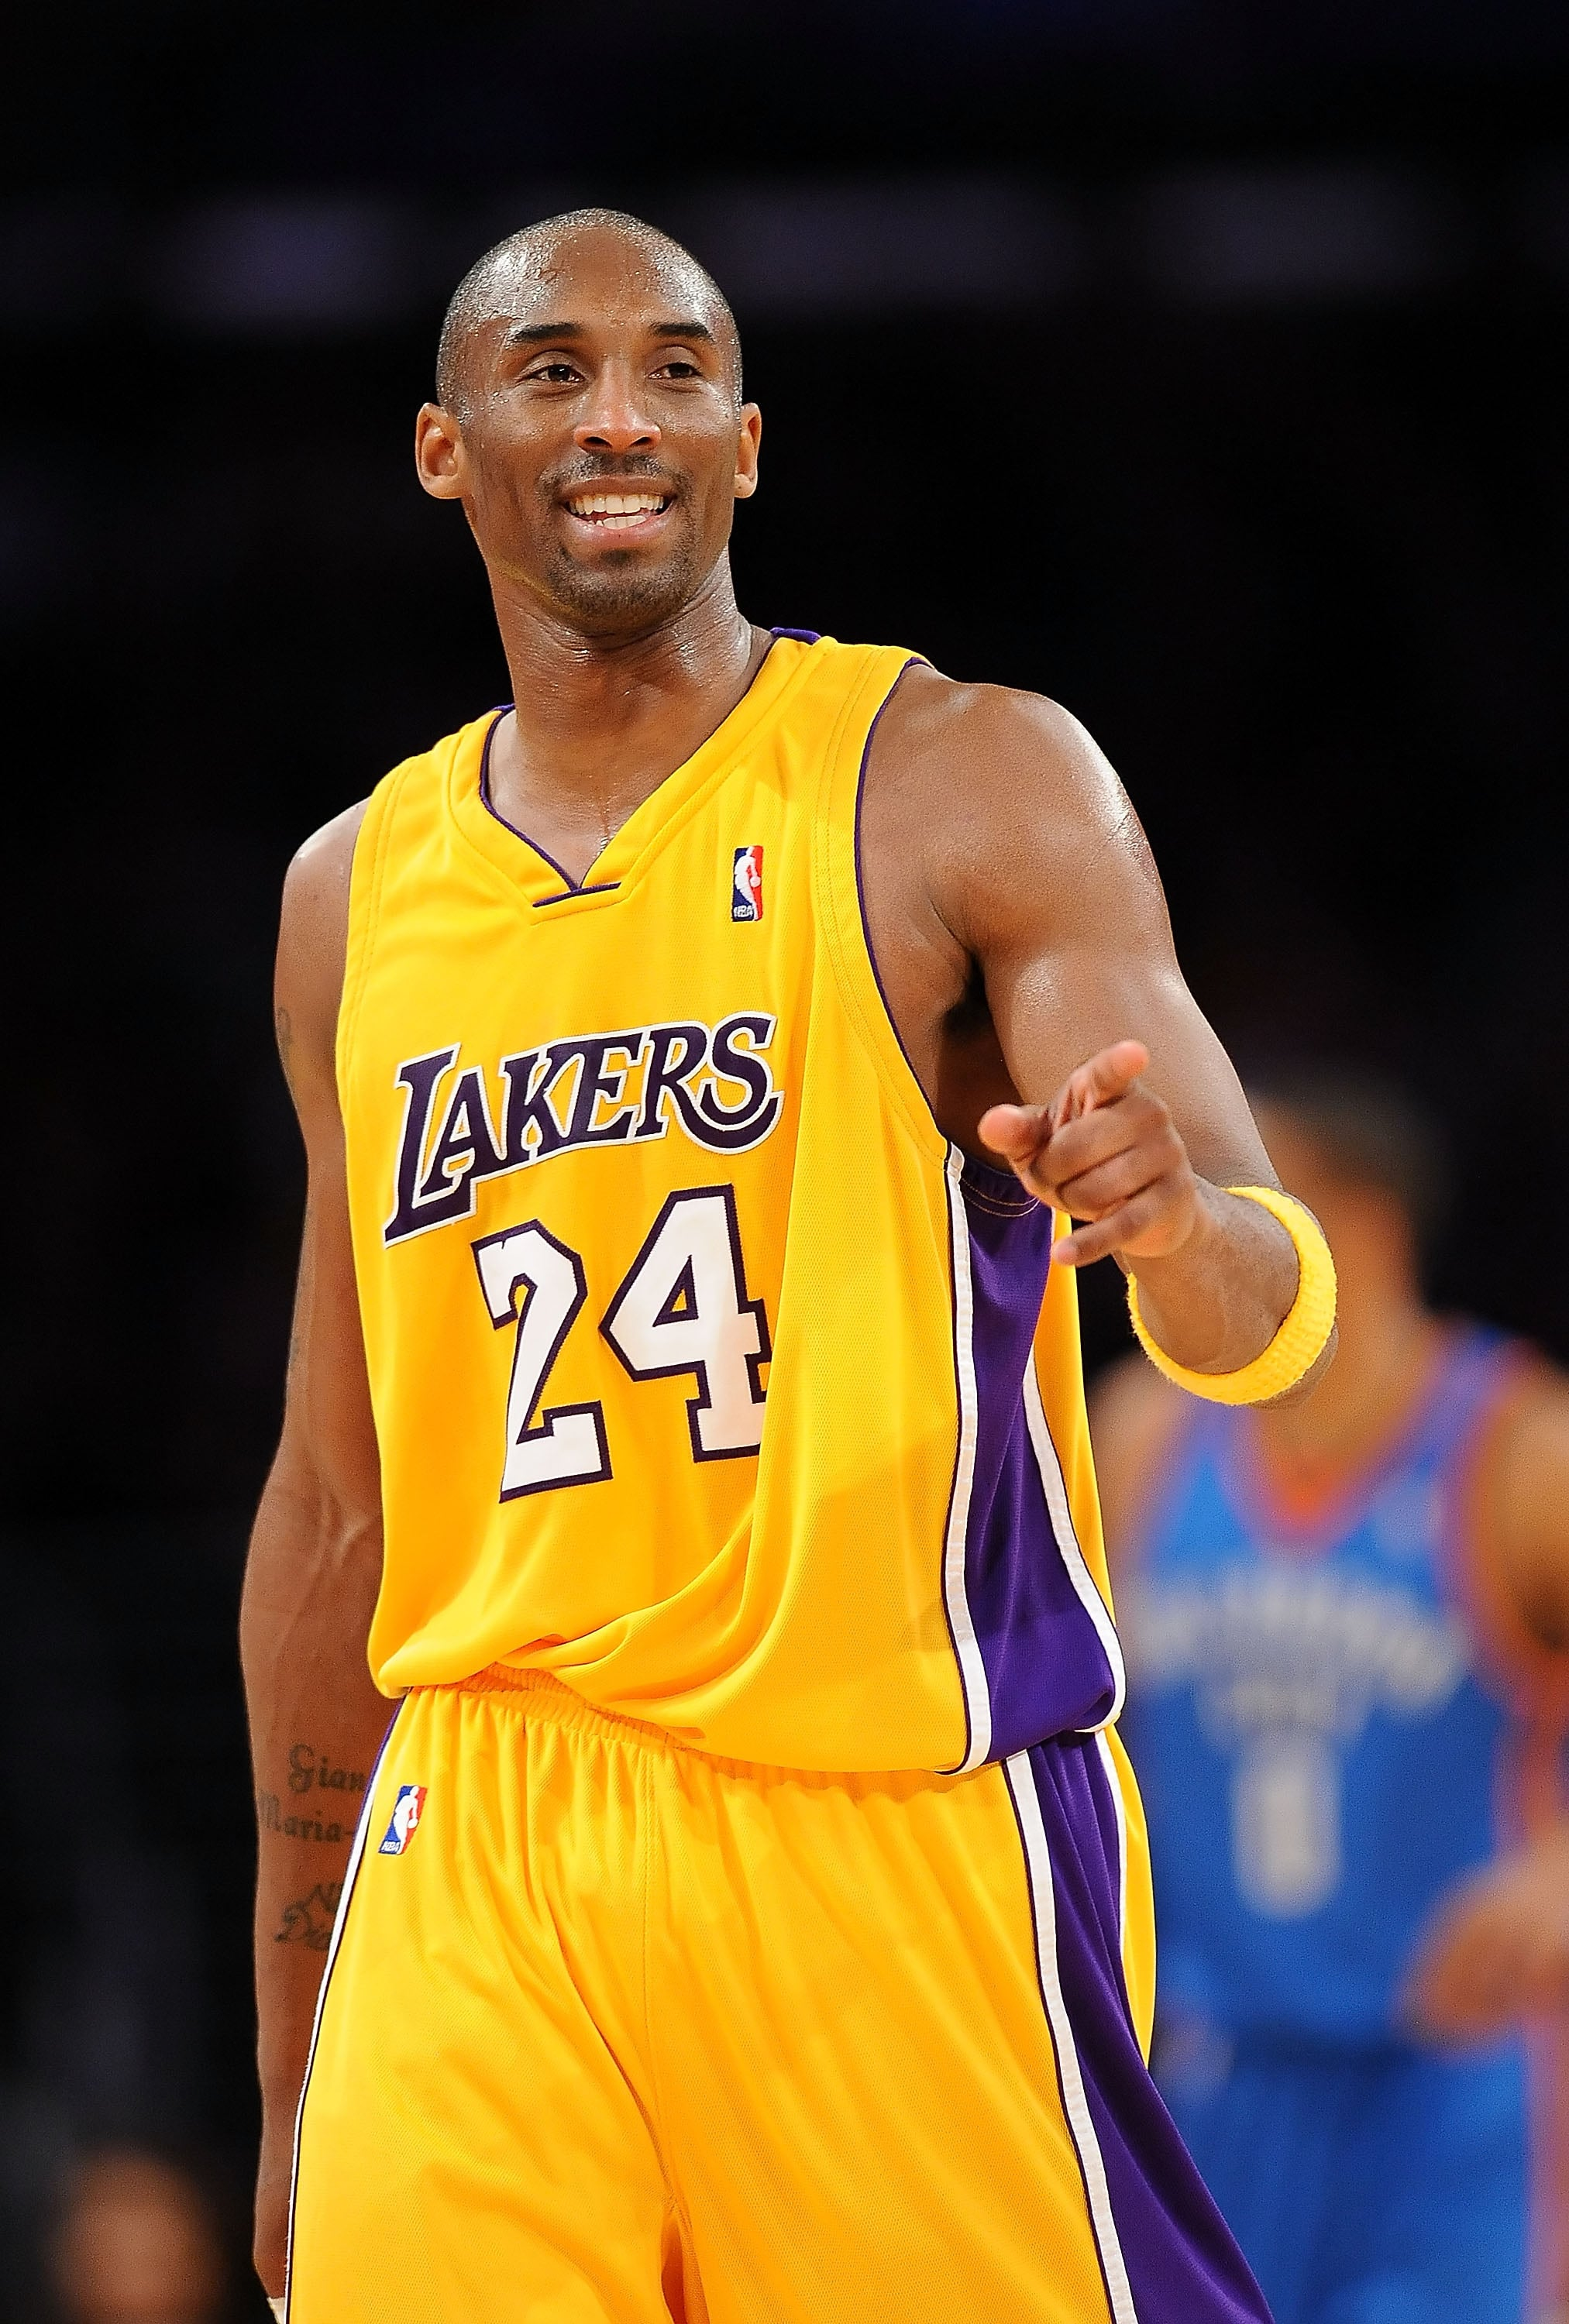 LOS ANGELES, CA - DECEMBER 22:  Kobe Bryant #24 of the Los Angeles Lakers celebrates during the game against the Oklahoma City Thunder at Staples Centre on December 22, 2009 in Los Angeles, California. NOTE TO USER: User expressly acknowledges and agrees that, by downloading and or using this photograph, User is consenting to the terms and conditions of the Getty Images Licence Agreement.  (Photo by Lisa Blumenfeld/Getty Images)